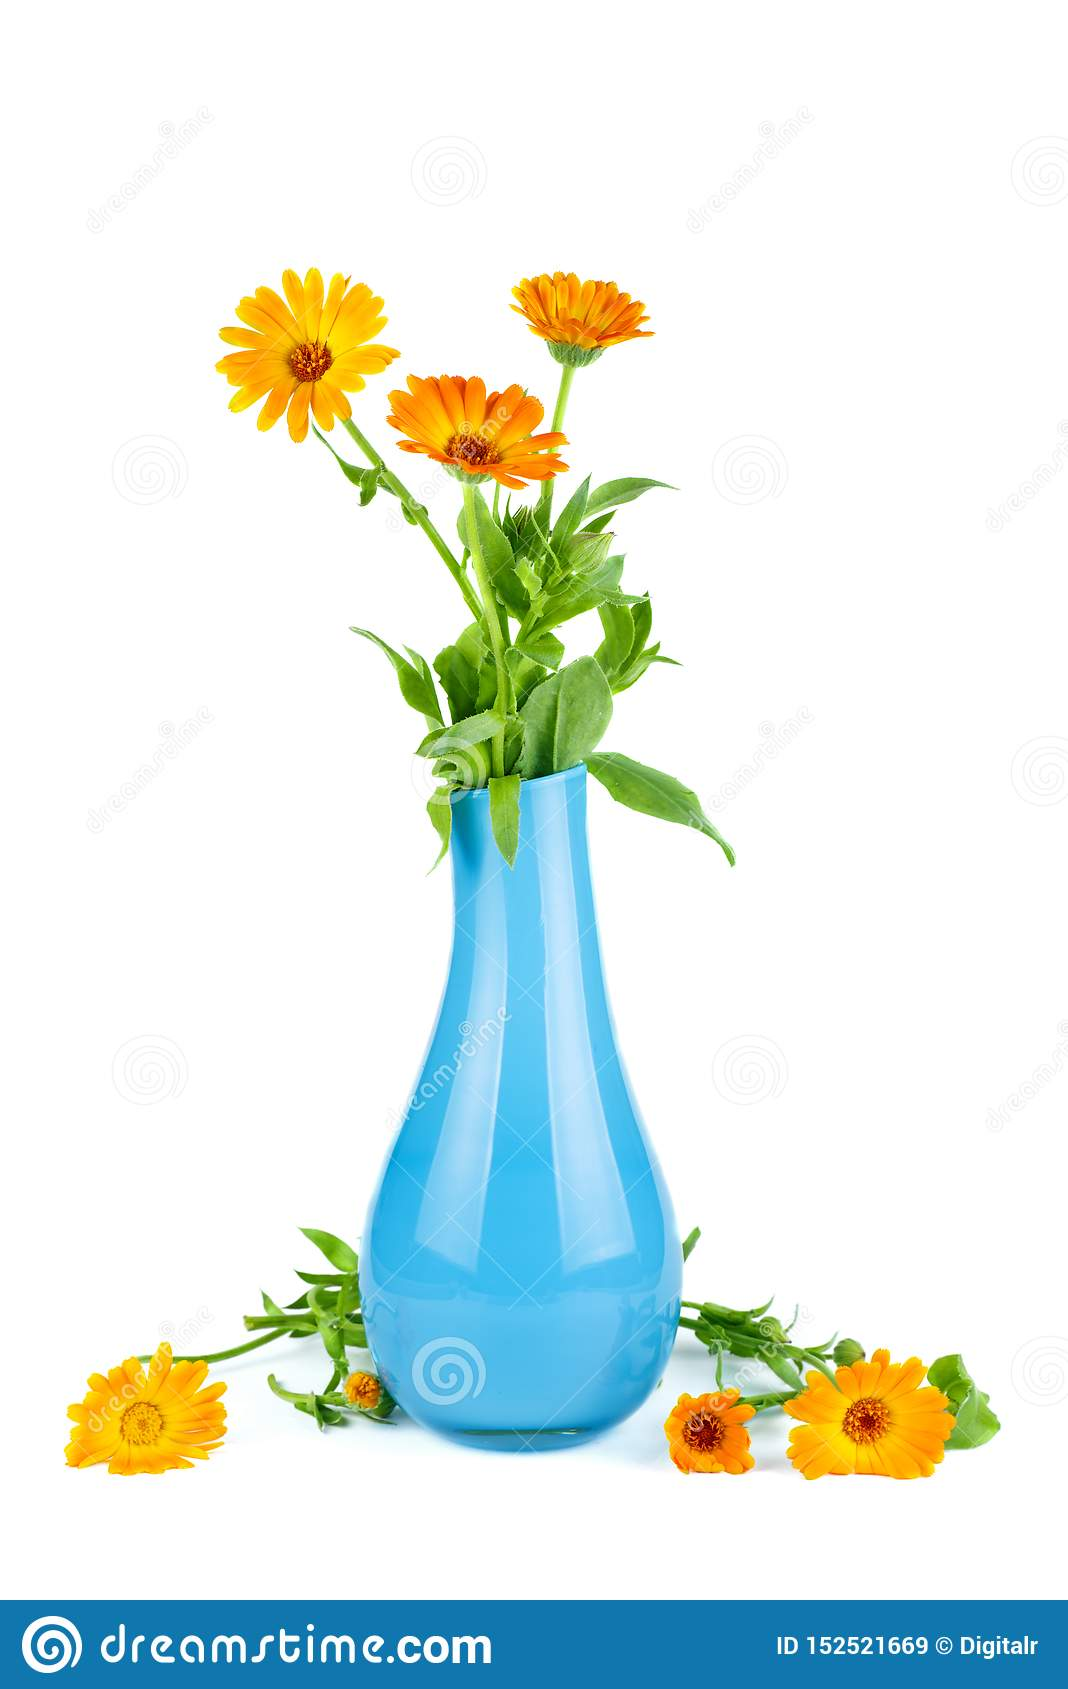 Calendula Marigold Flowers In Blue Ceramic Vase Stock Image Image Of Orange Herbal 152521669